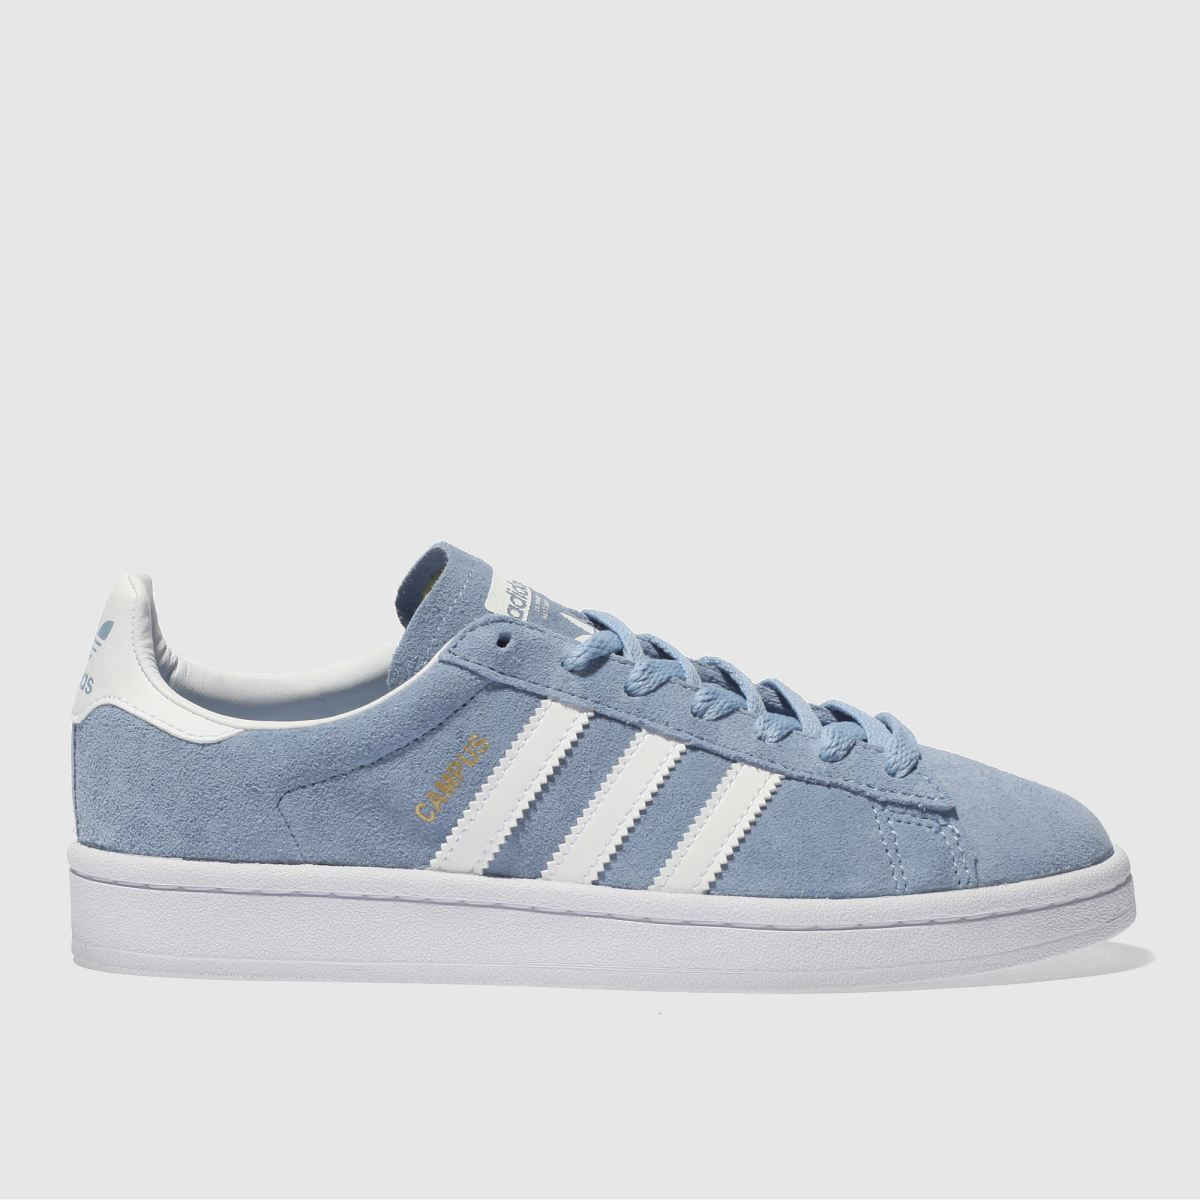 Adidas Pale Blue Campus Youth Trainers